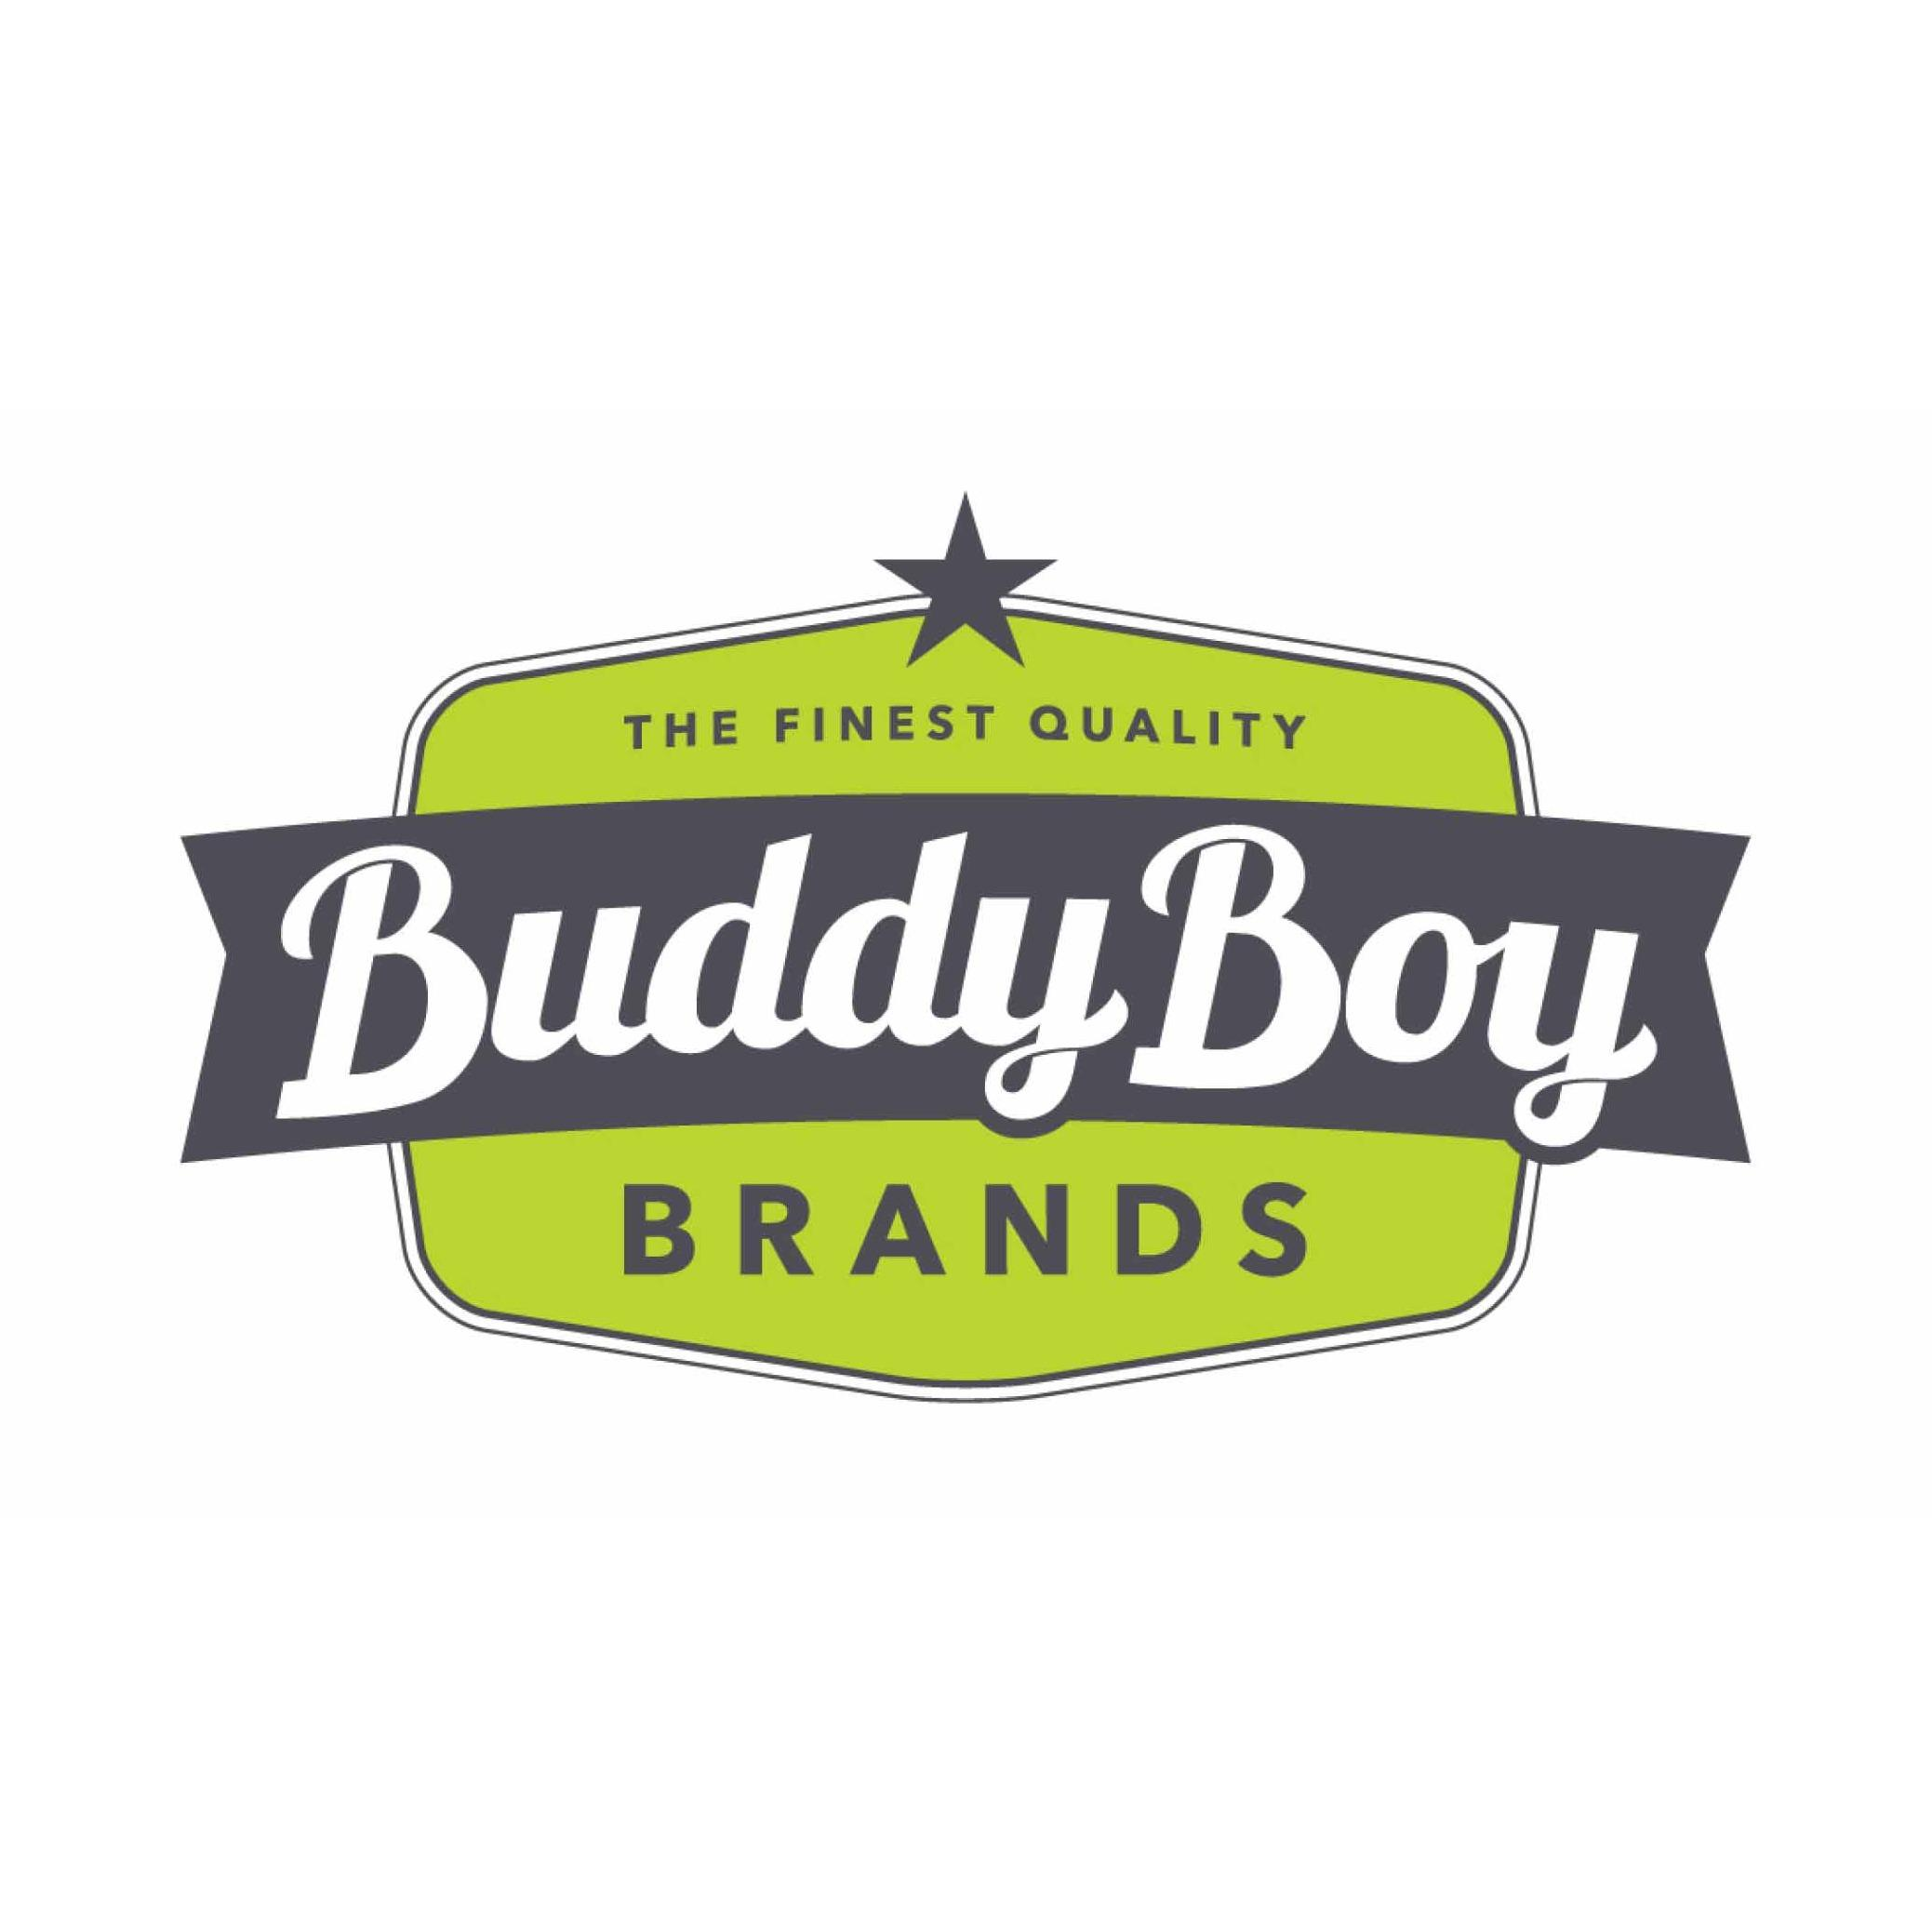 Buddy Boy Brands | Medical Marijuana and Recreational Cannabis Dispensary